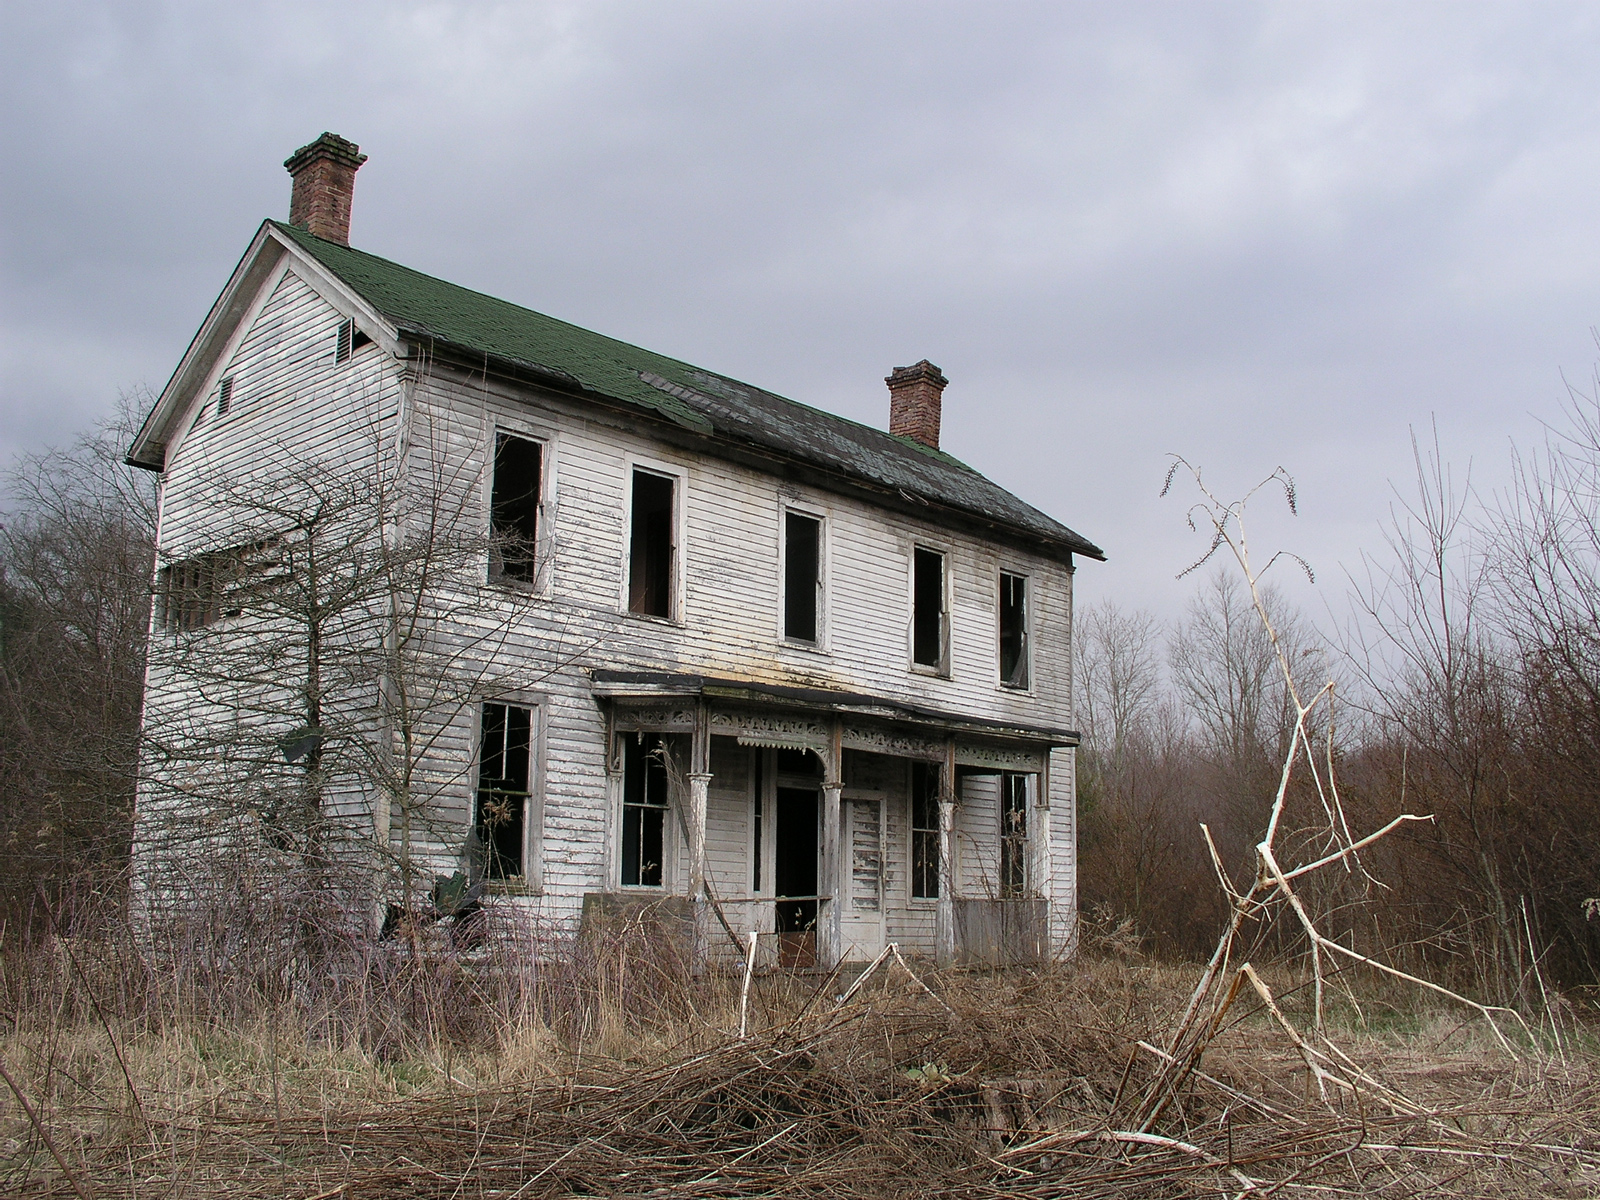 ... S.S. Old House - 7 by shudder-stock